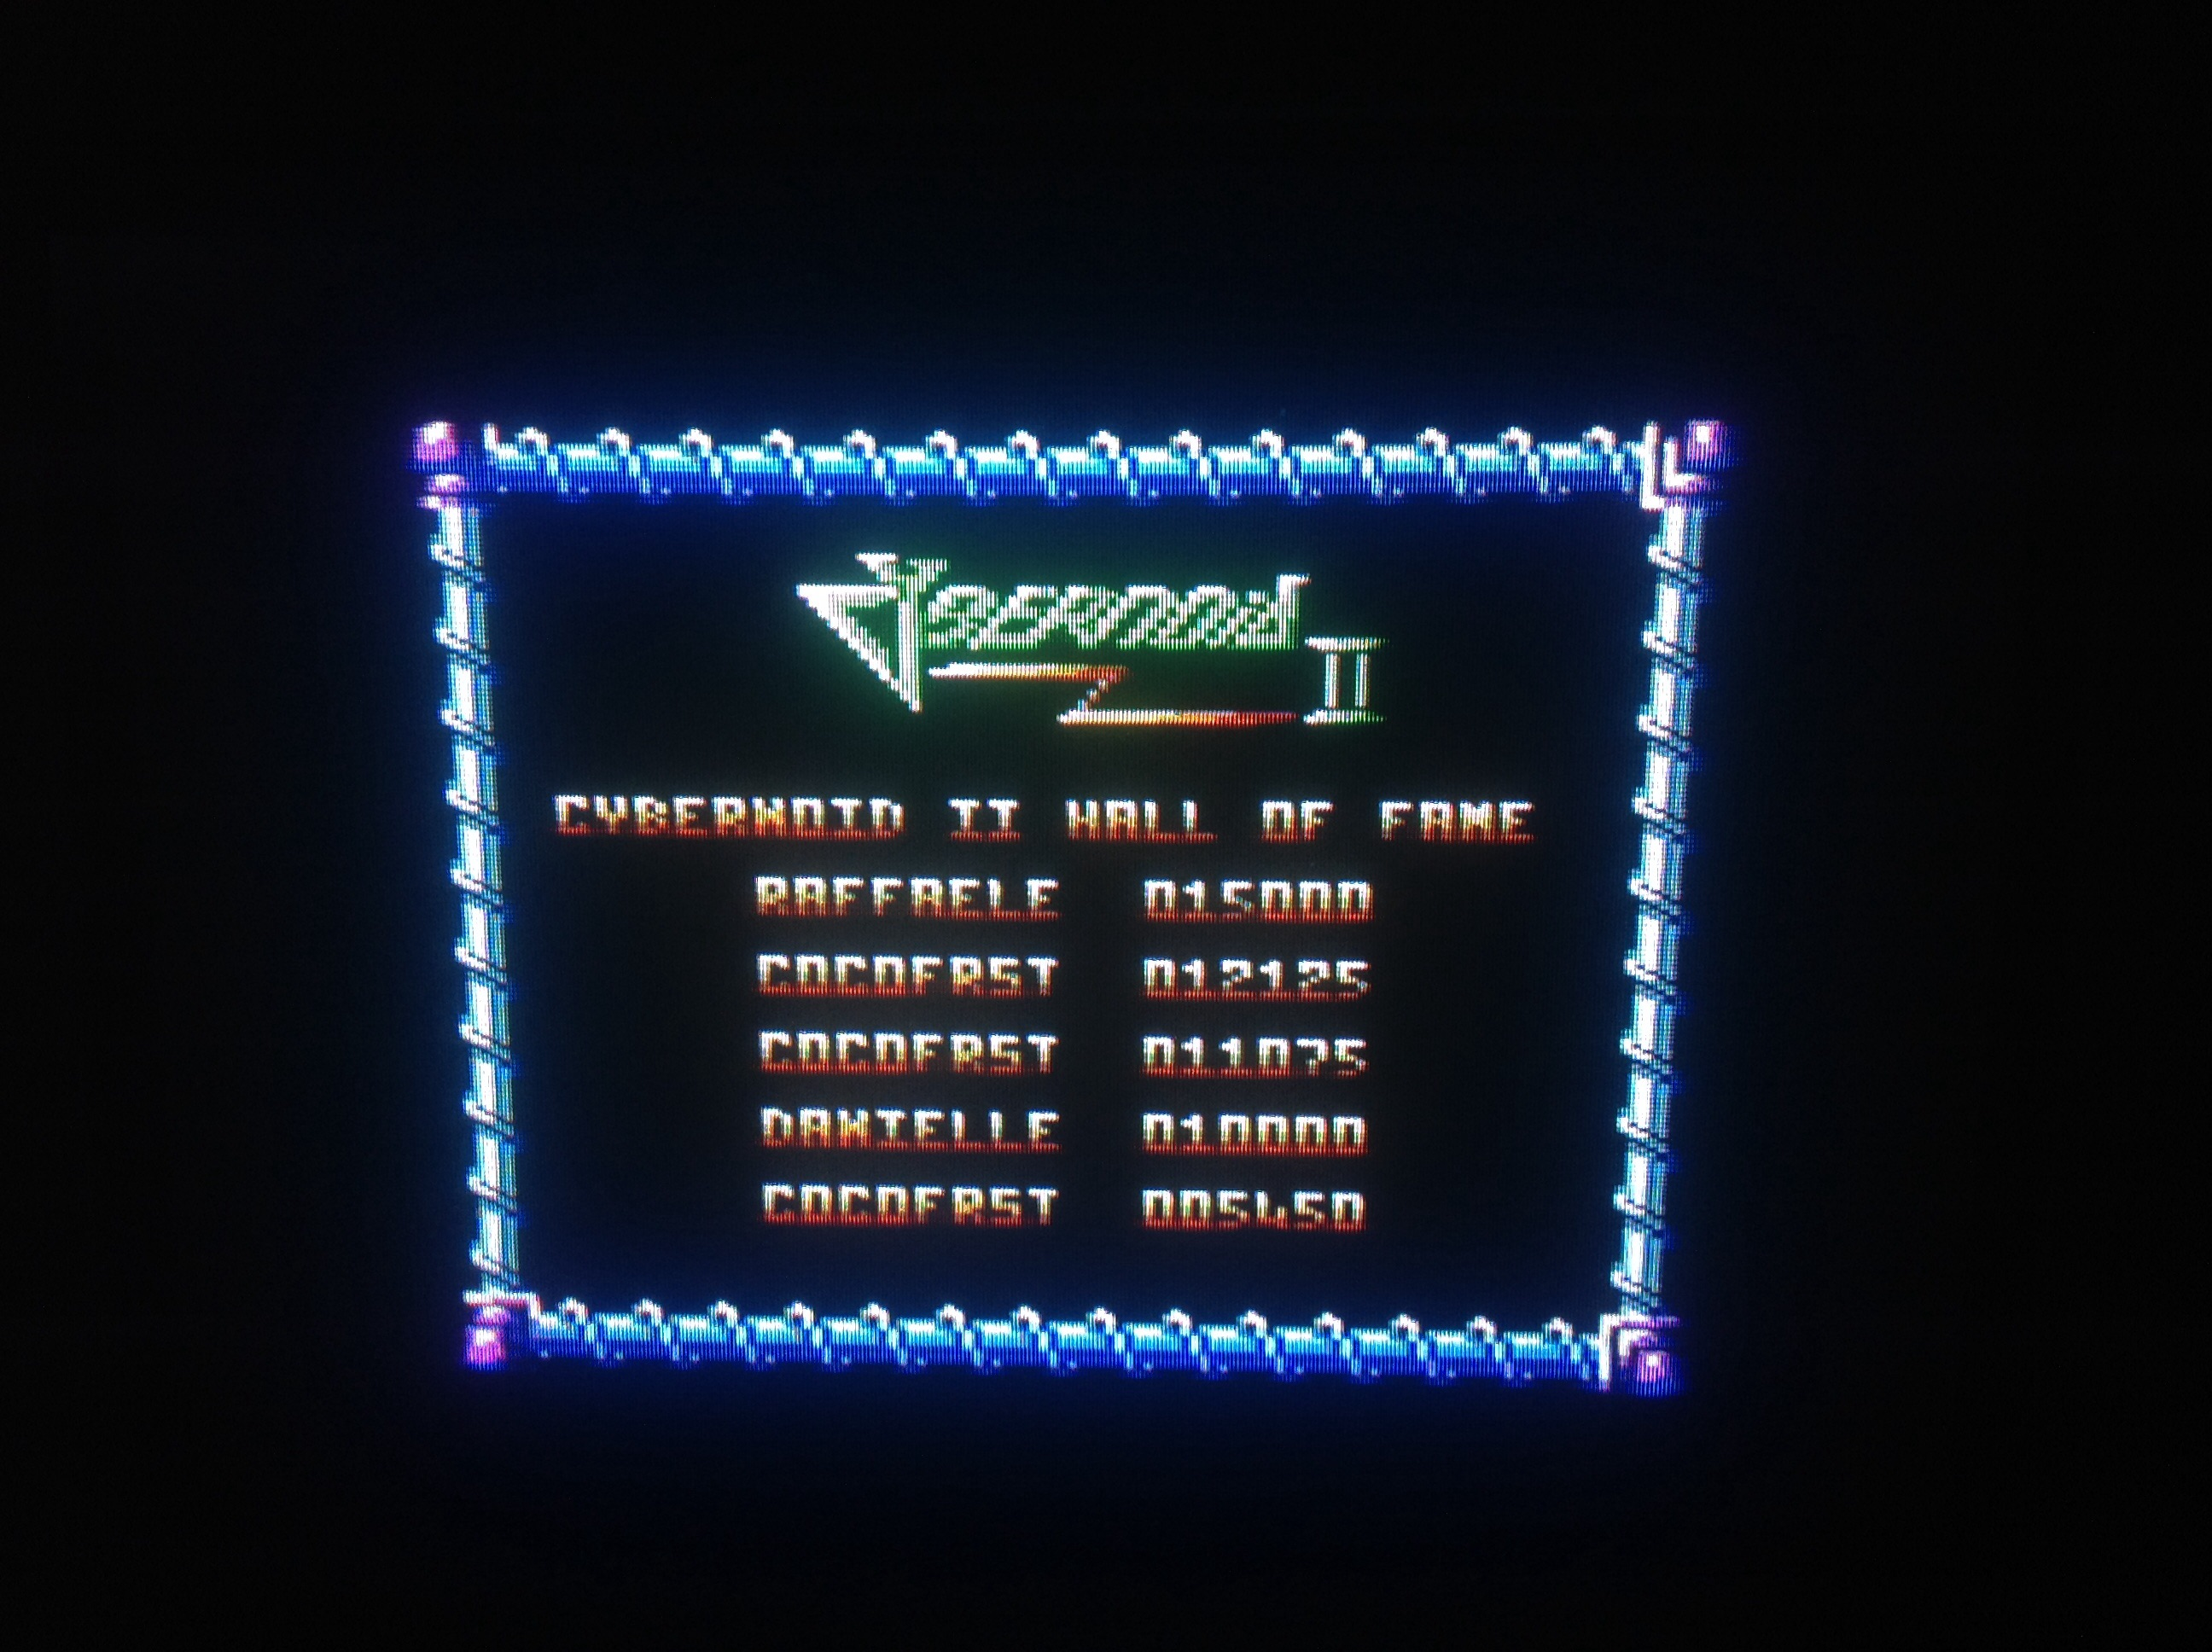 CoCoForest: Cybernoid 2 (Amstrad CPC) 12,125 points on 2015-05-05 14:55:21